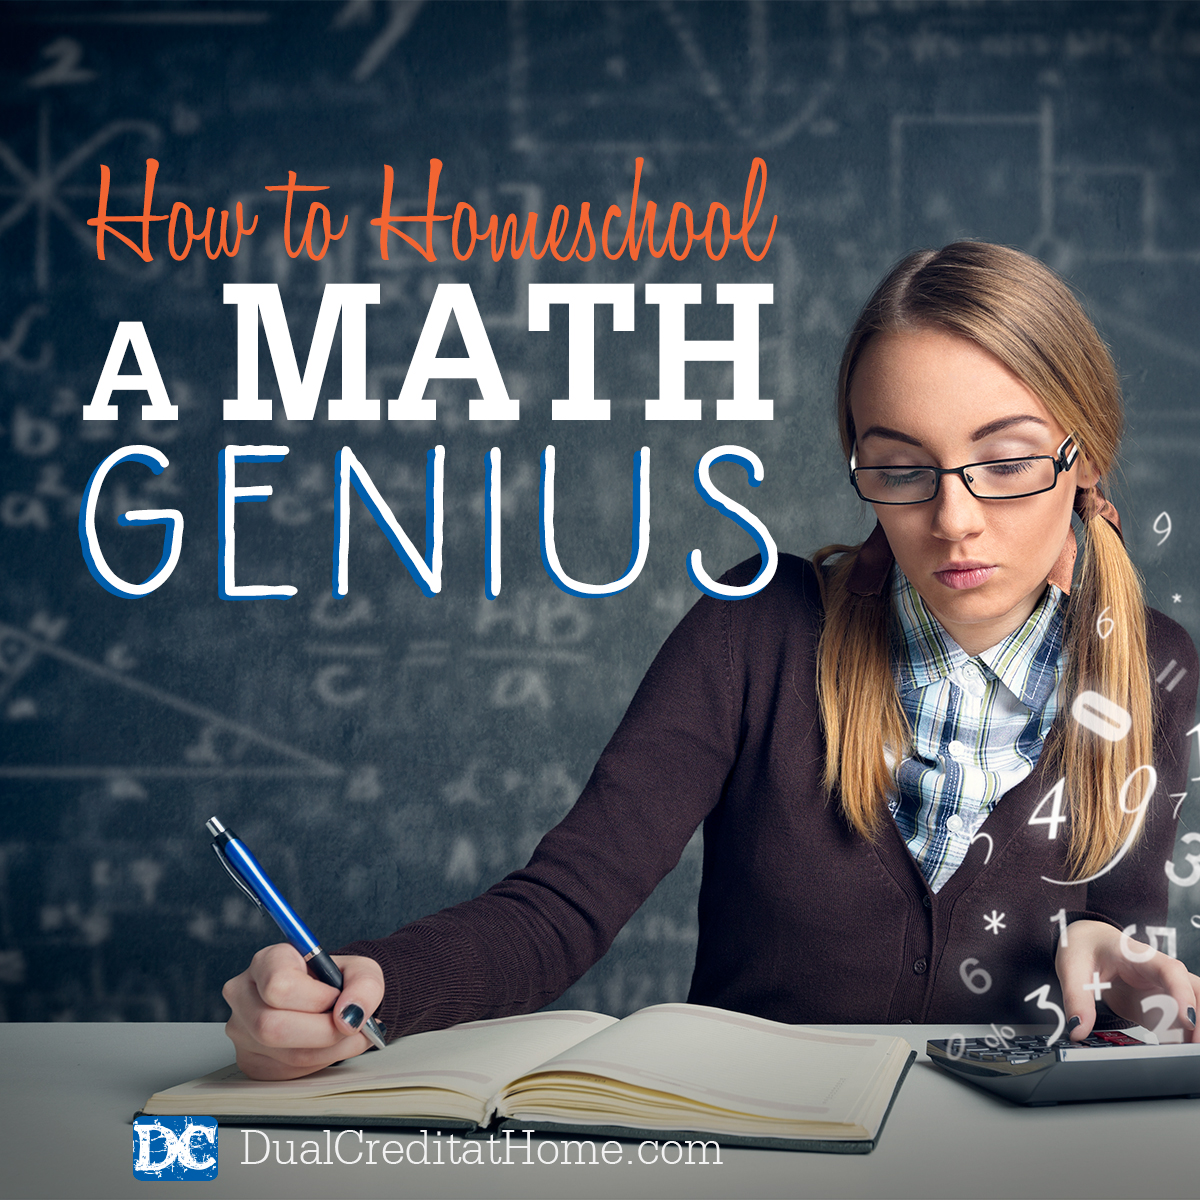 How to Homeschool a Math Genius